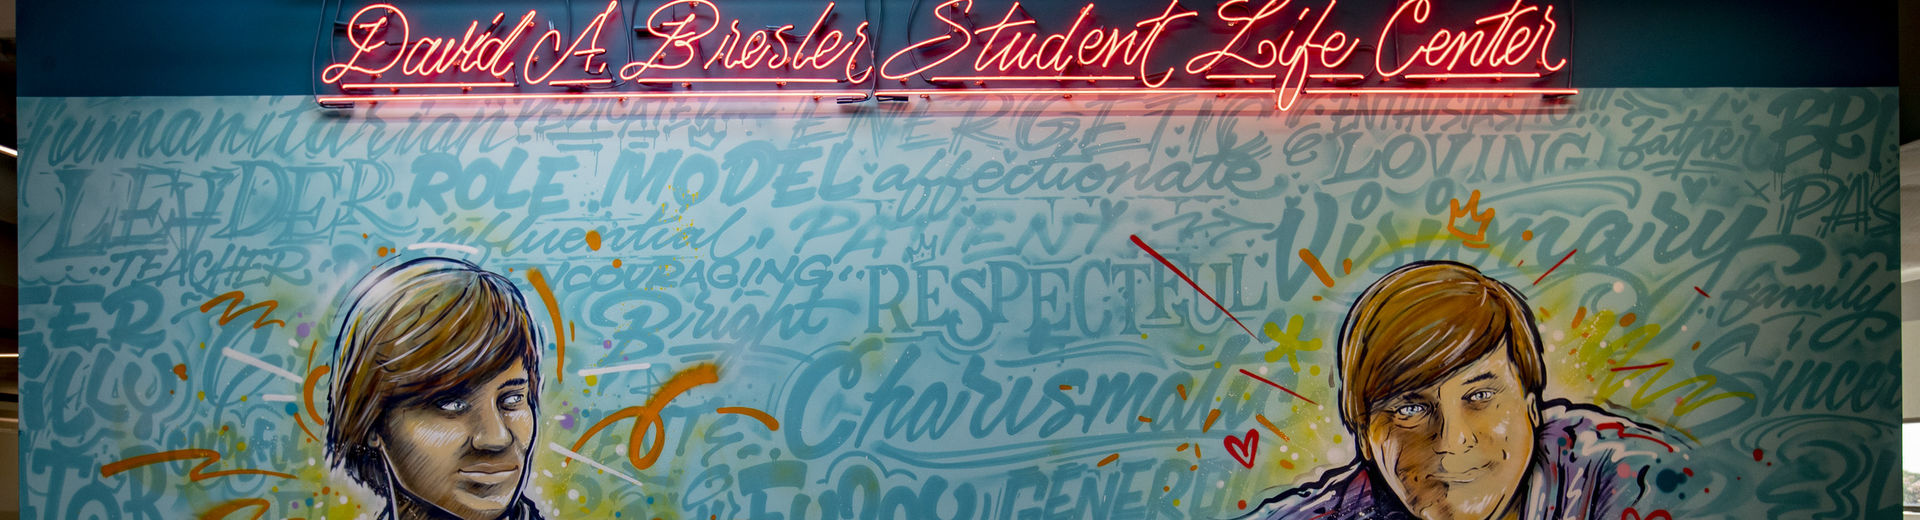 A mural at the entrance to the David A. Bresler Student Life Center.